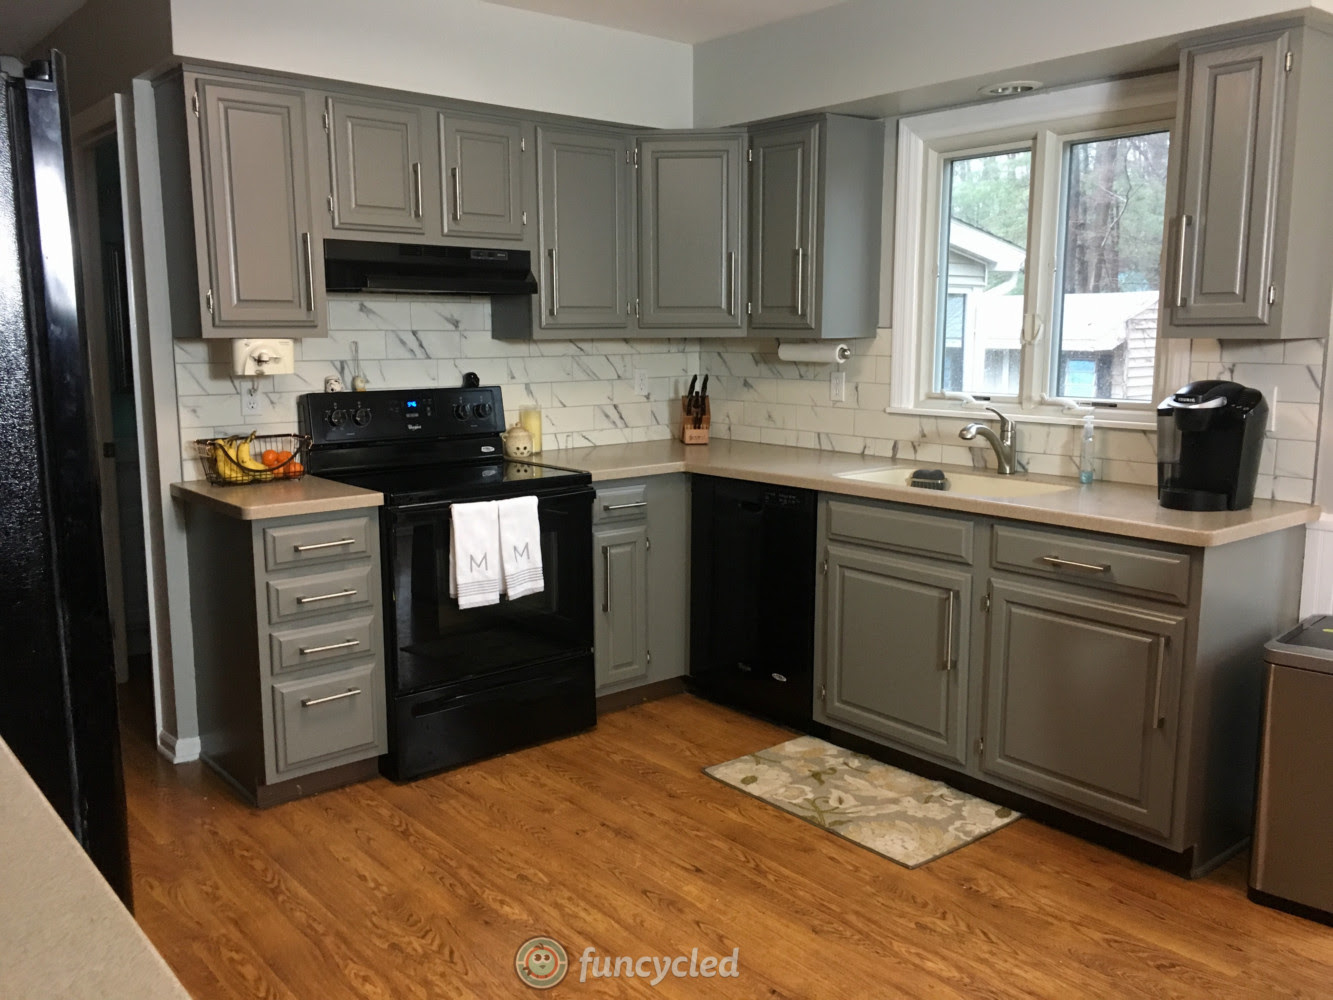 Oak Kitchen Cabinets Painted Chelsea Gray - FunCycled